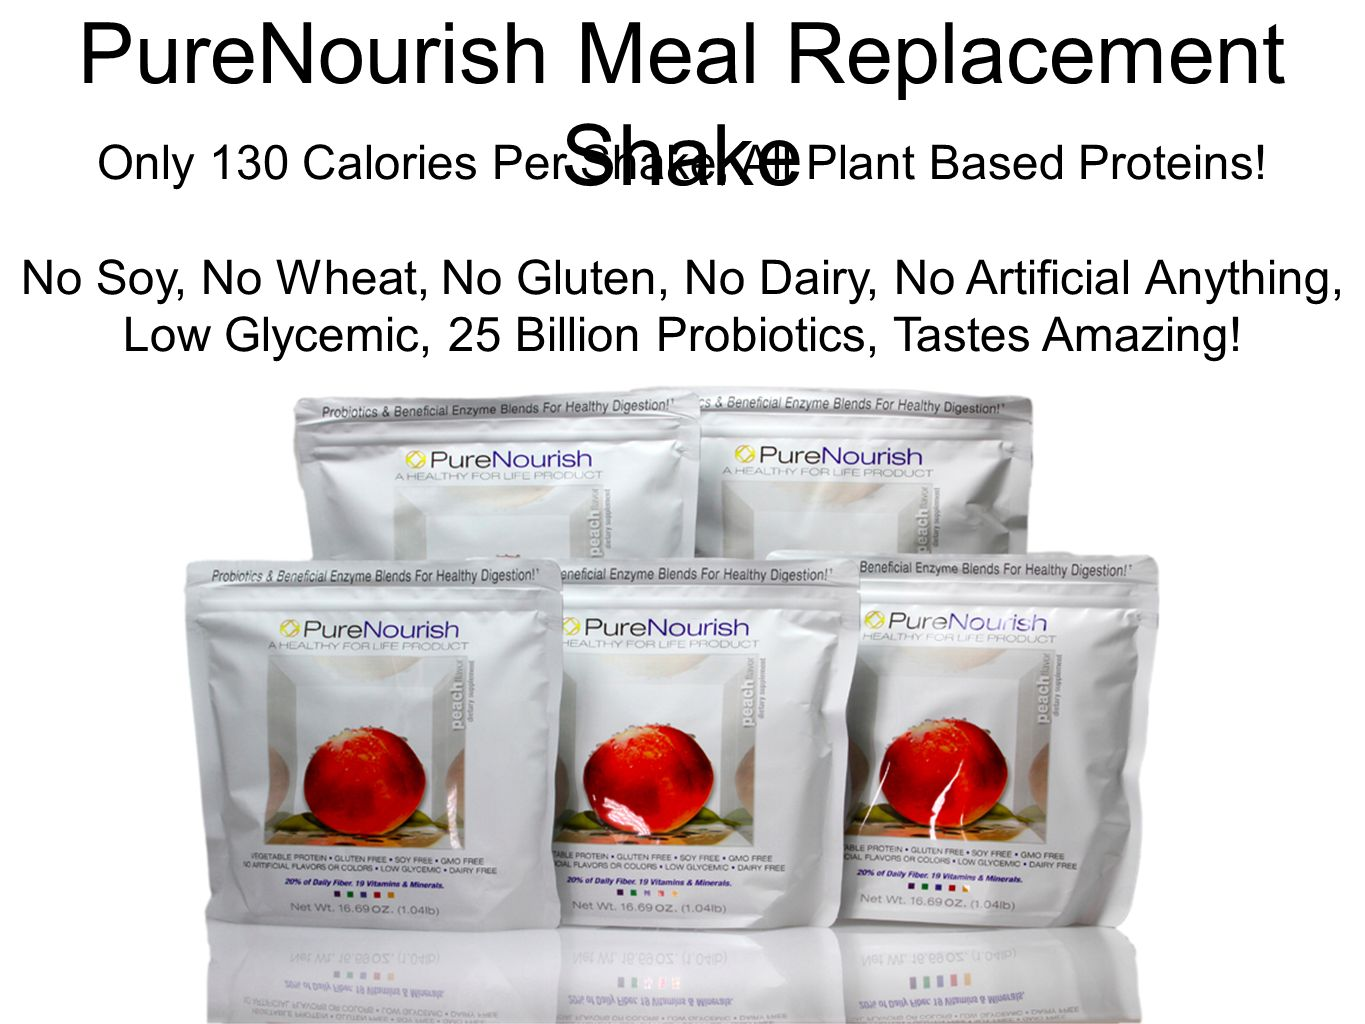 PureNourish Meal Replacement Shake